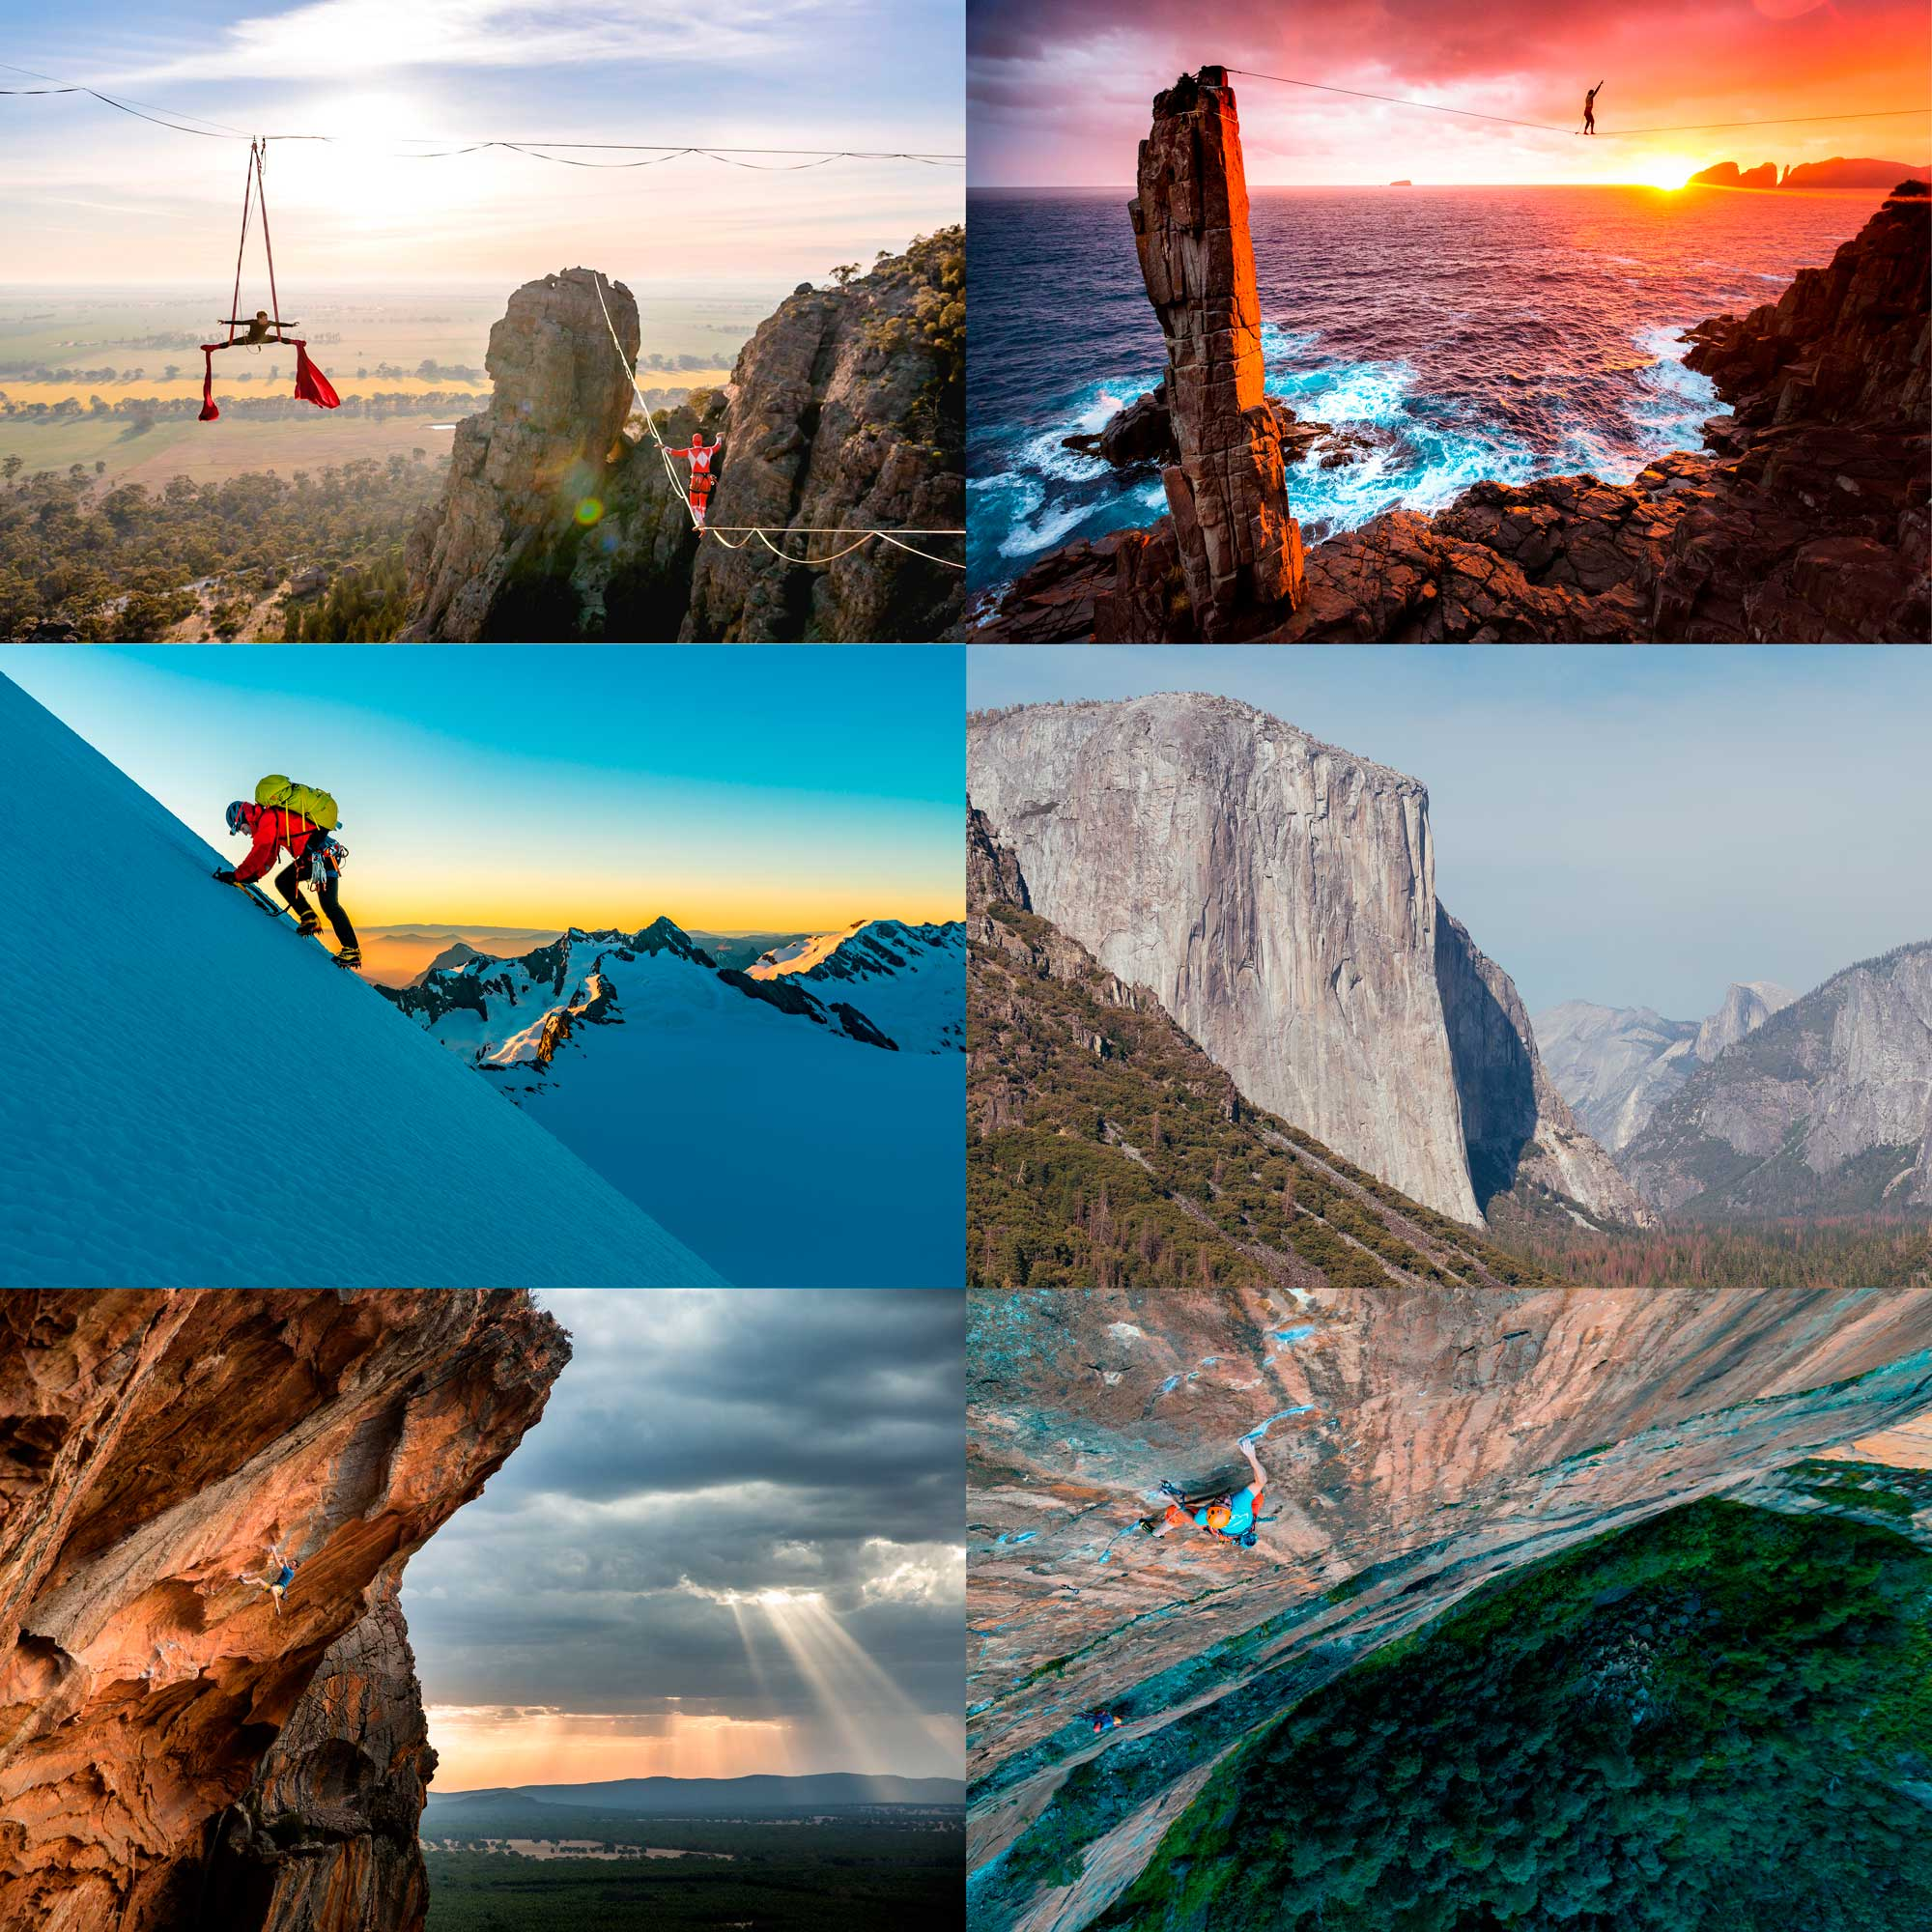 Professional Photography Prints - Climbing, Landscapes, Slacklining, Canyoning and more